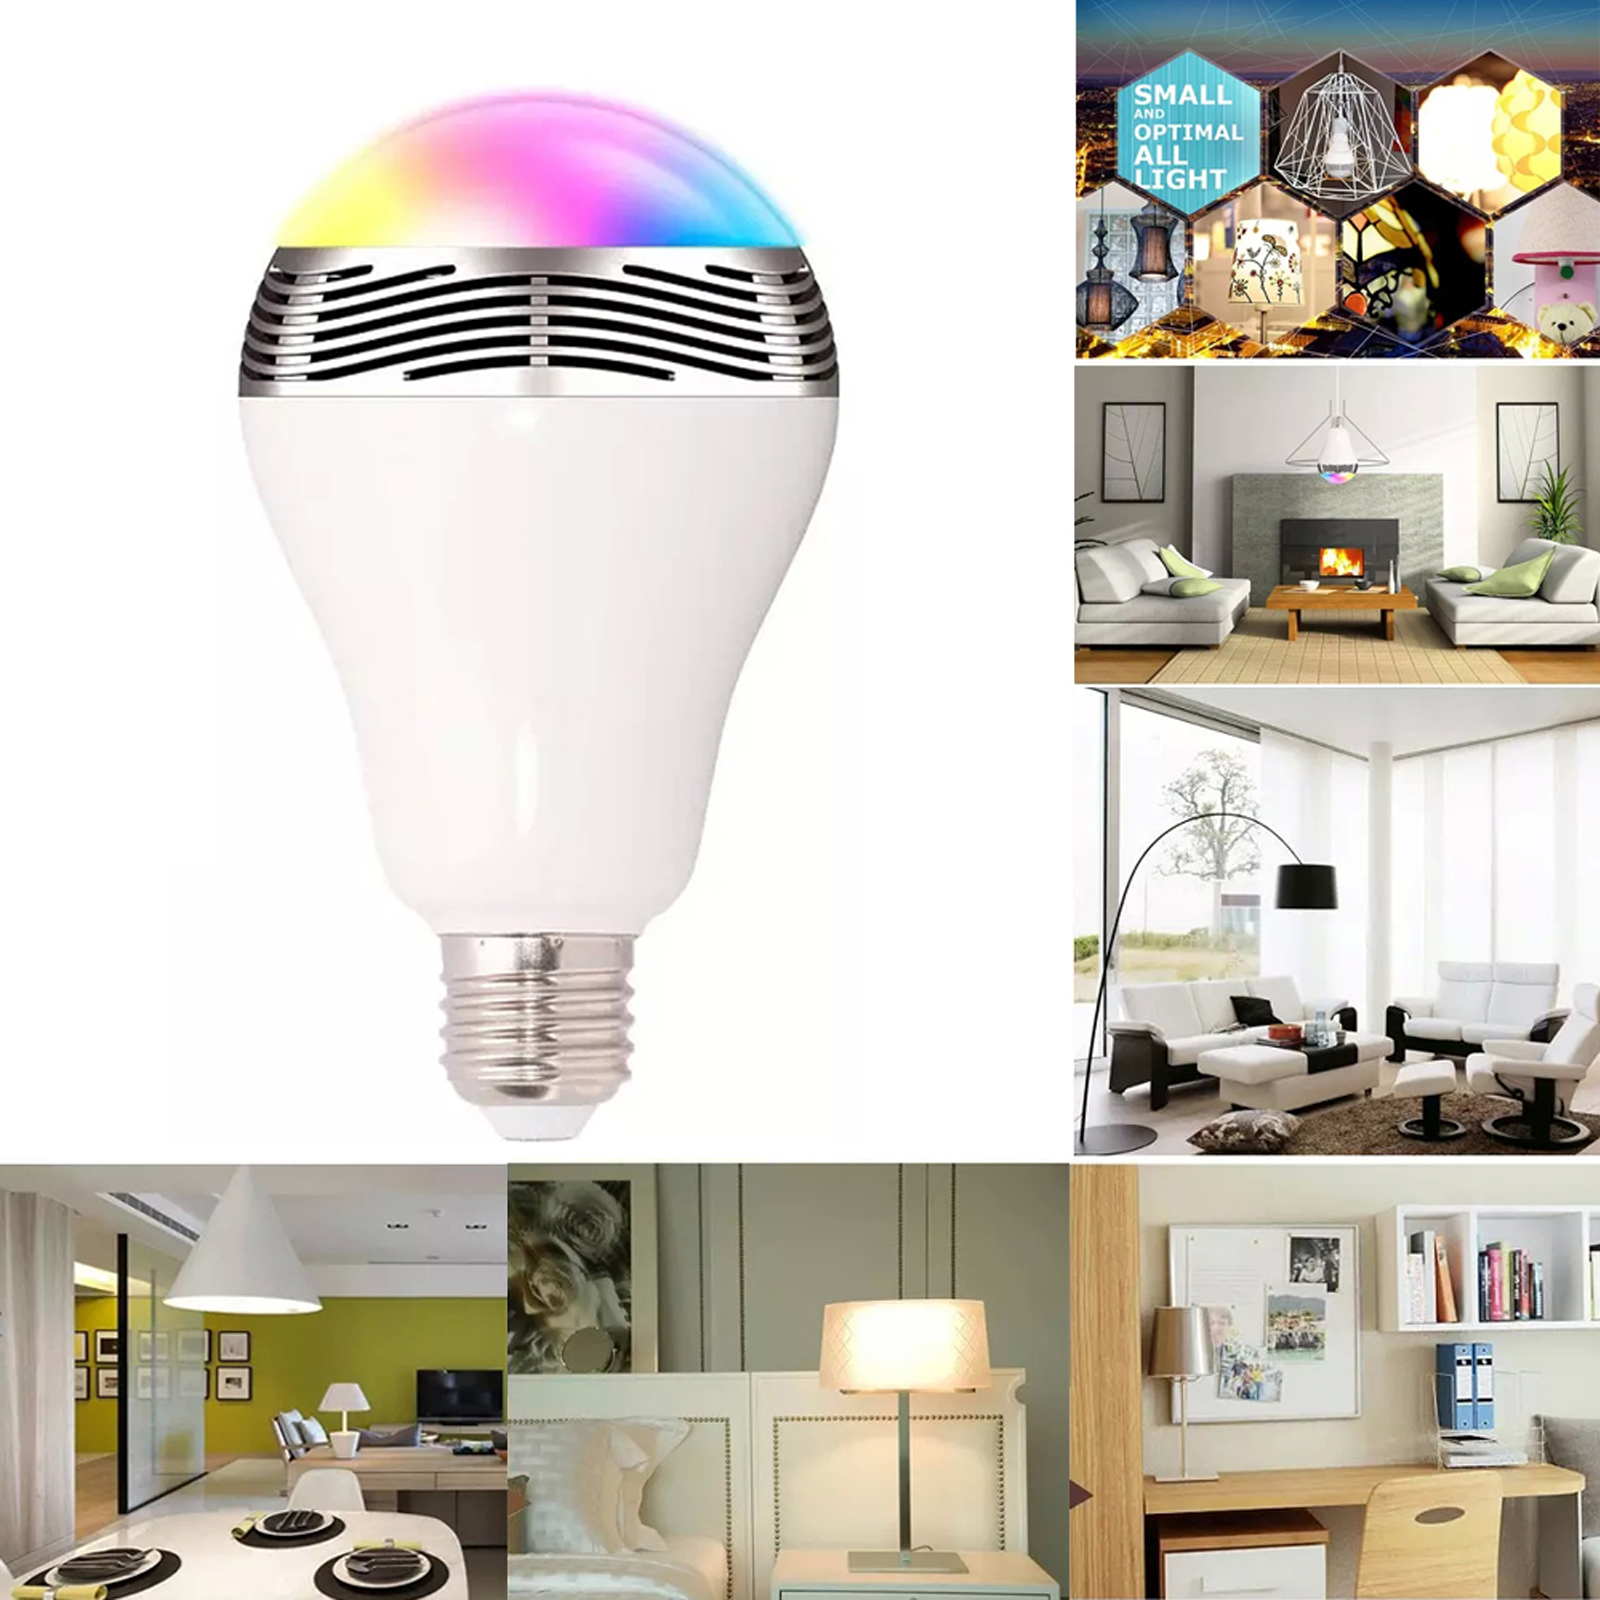 smart bunte led birne lichter wireless bluetooth musik disco e27 glhbirne lampe - Bunte Led Lampen